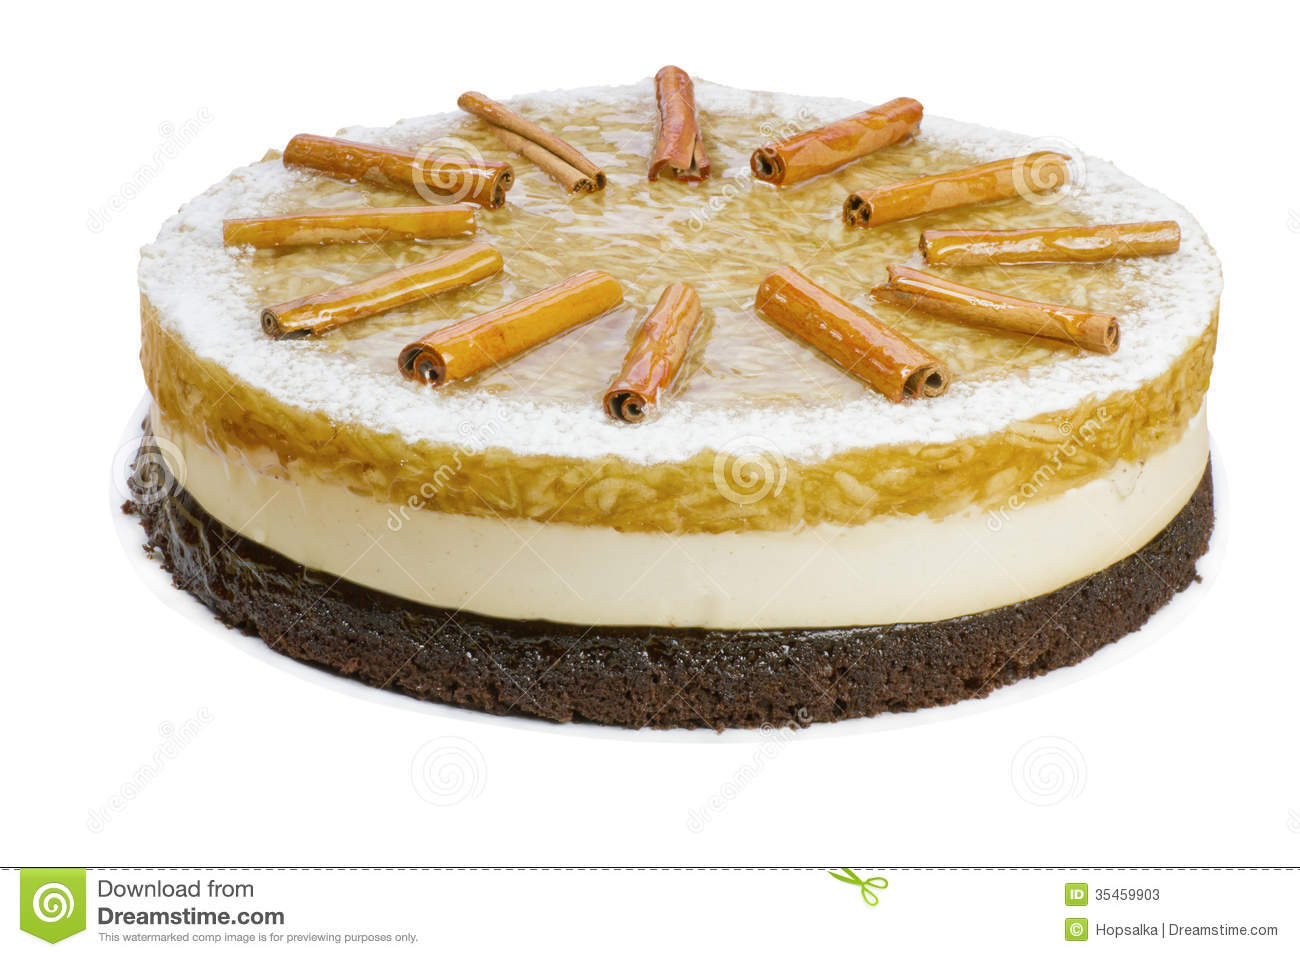 Birthday Pastry Cake Images Download : Whole Apple Birthday Cake Stock Photos - Image: 35459903